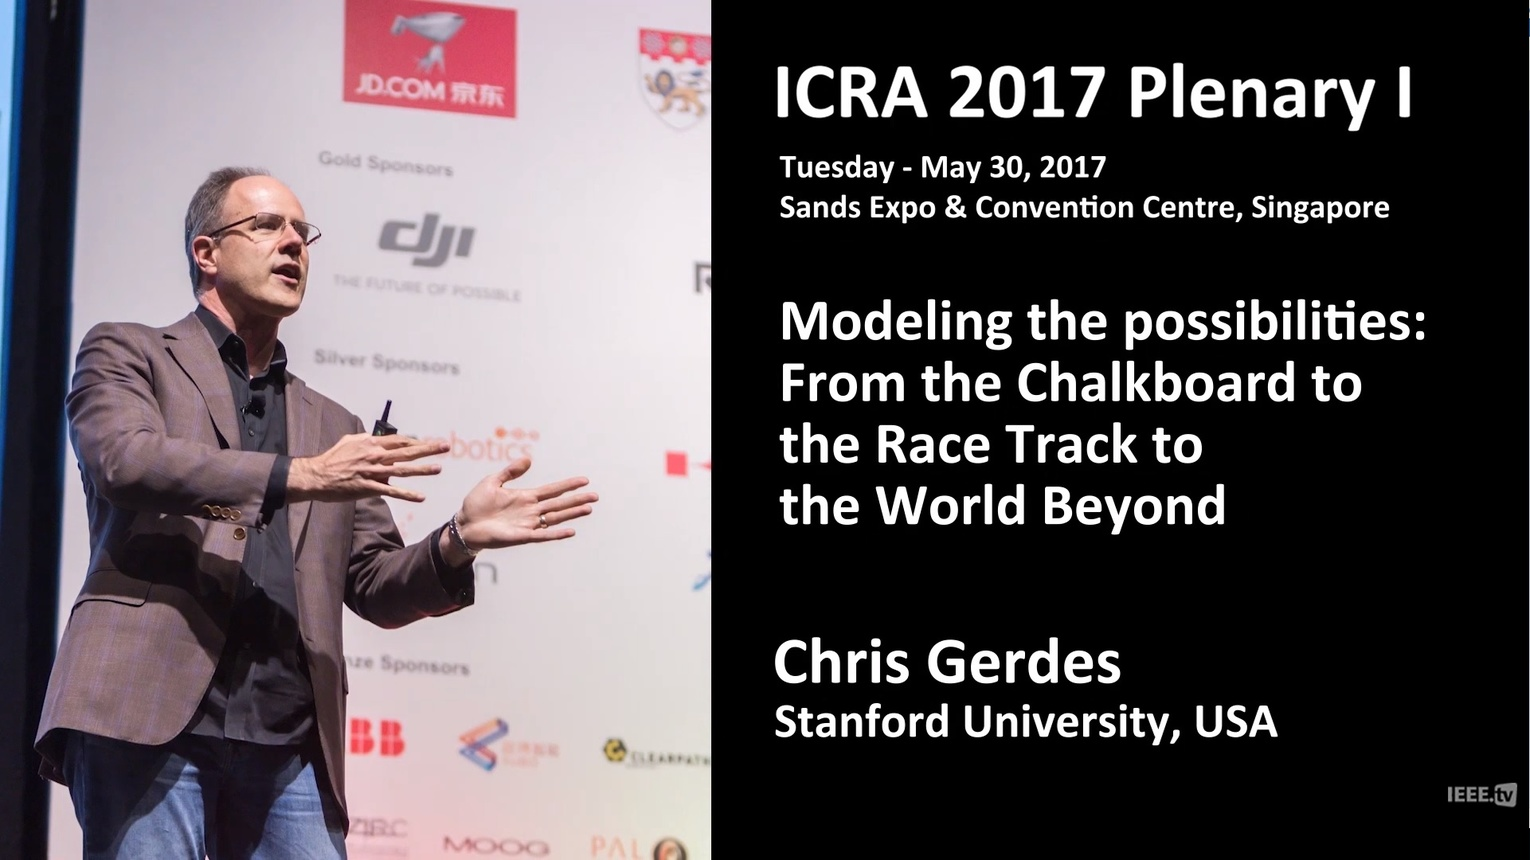 Modeling the possibilities: From the Chalkboard to the Race Track to the World Beyond